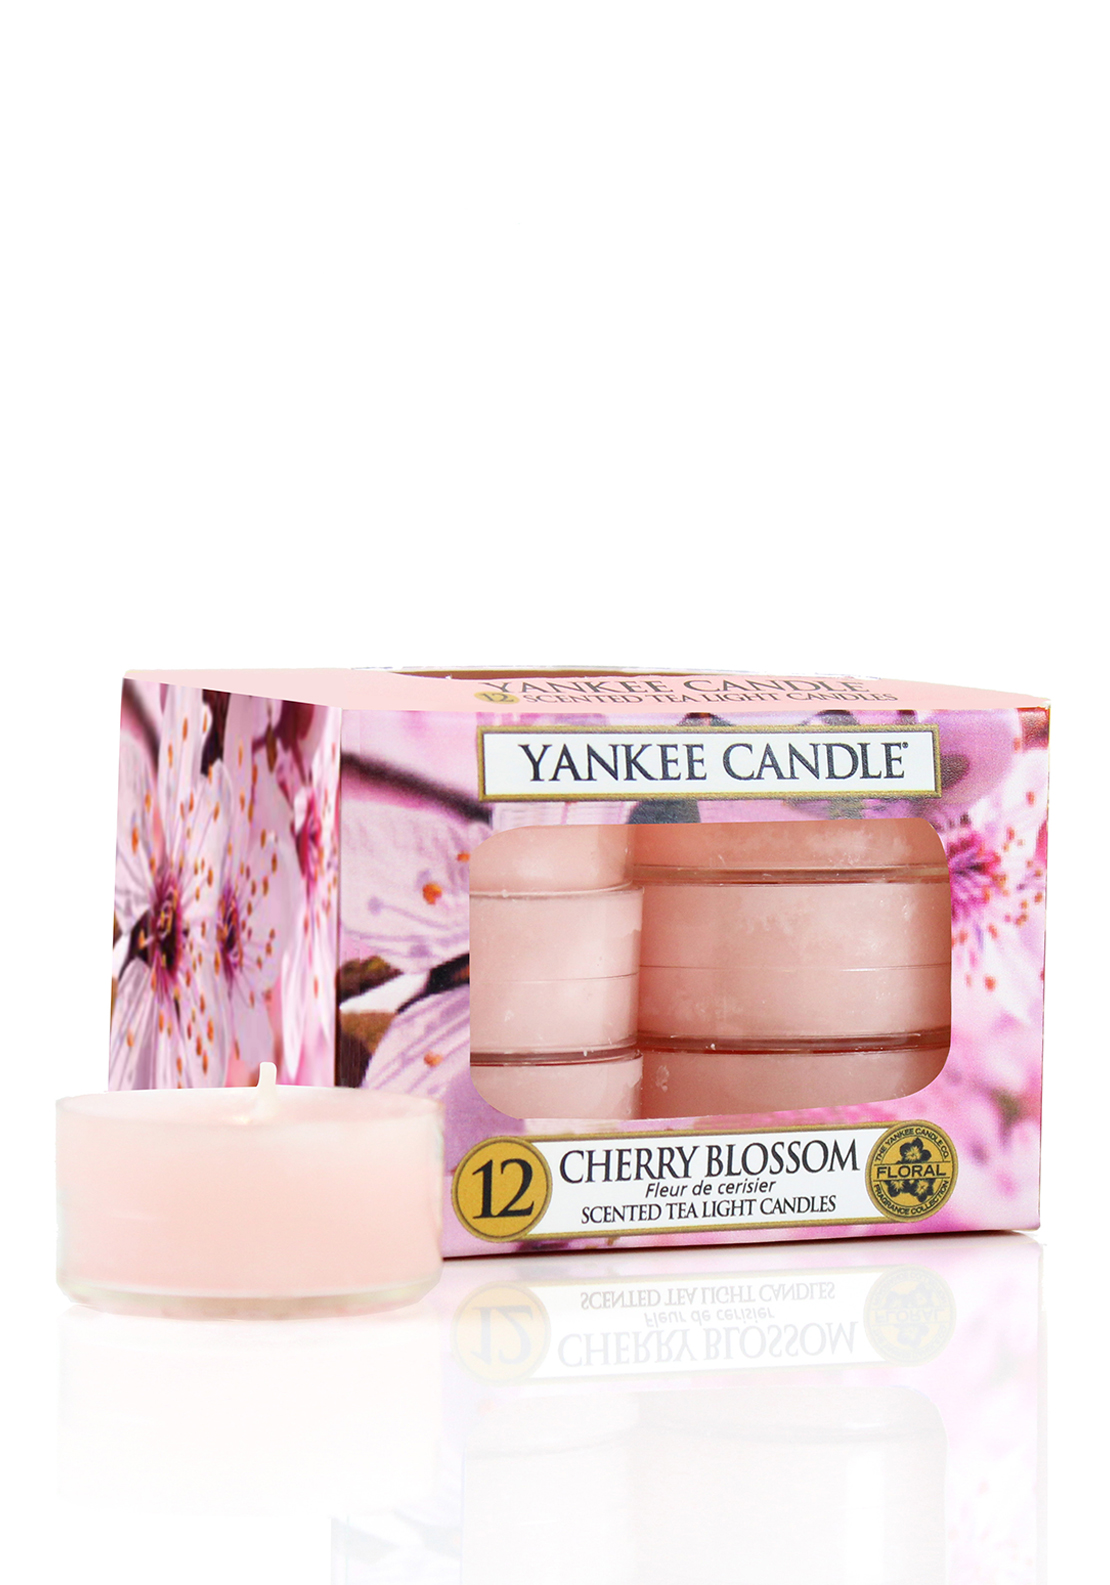 Yankee Candle Scented Tealight Candle, Cherry Blossom